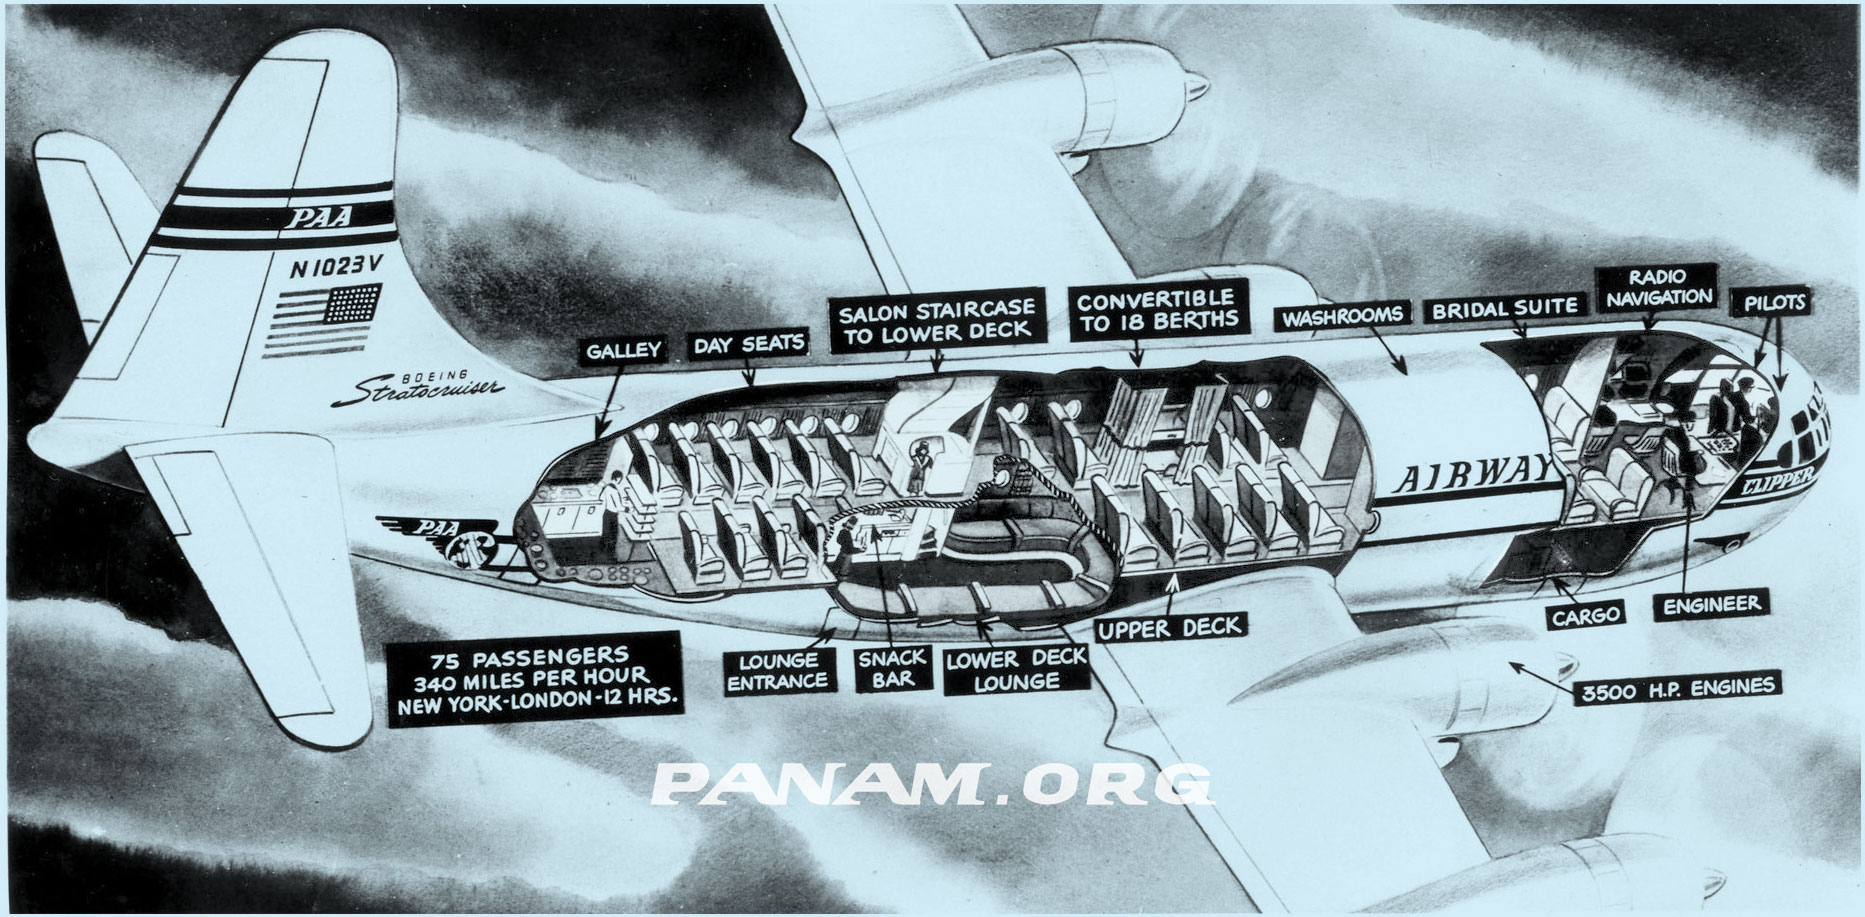 Pan Am N1023V B 377 Stratocruiser Cutaway